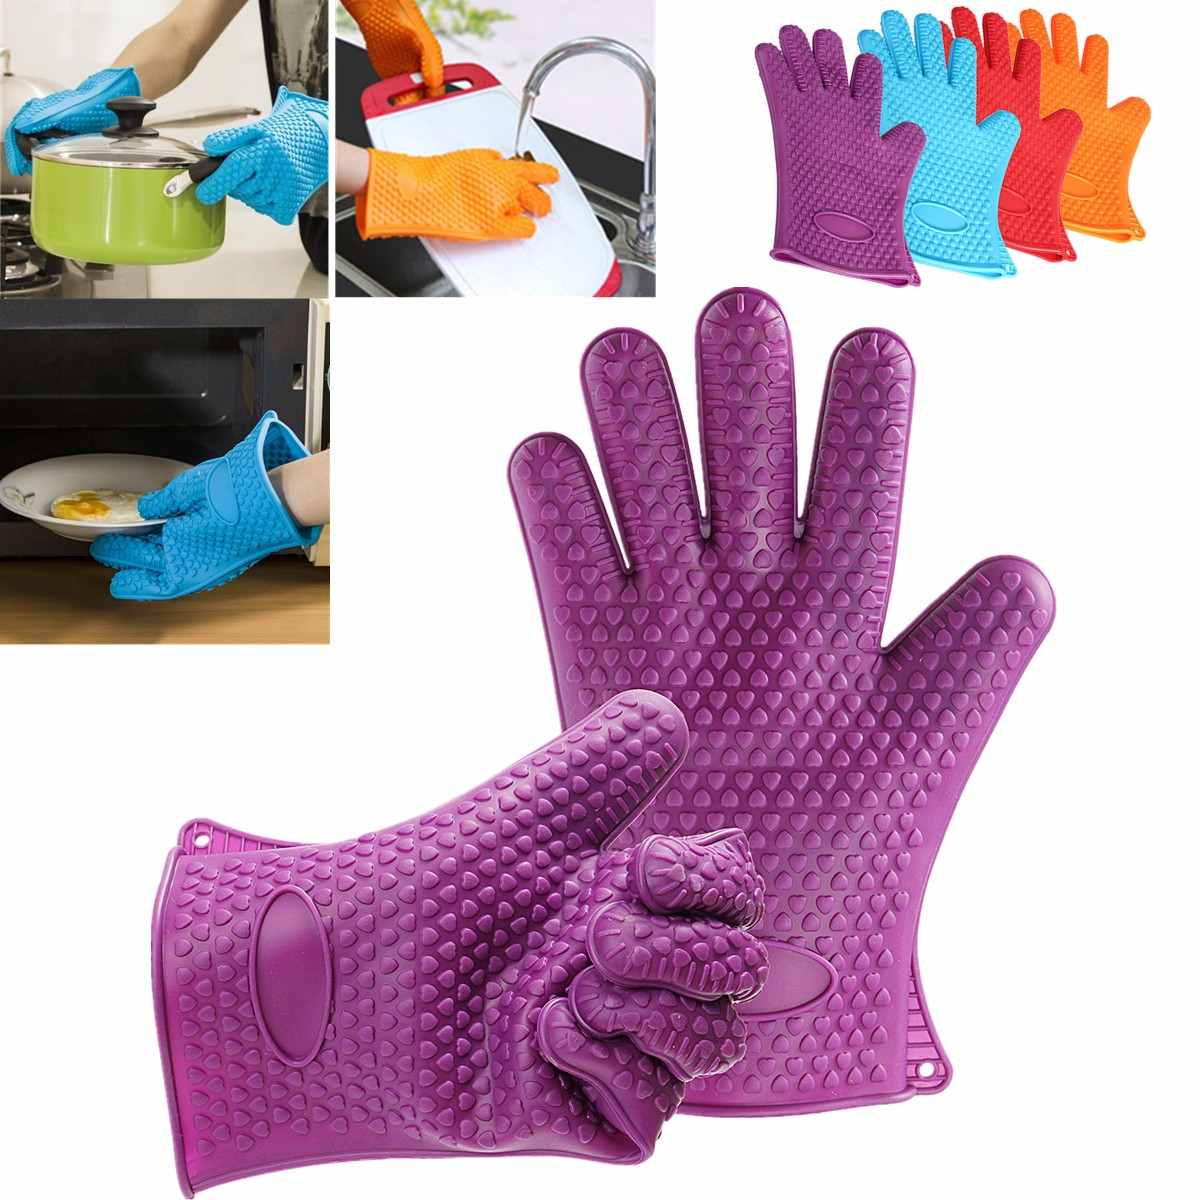 1 Pair food grade Heat Resistant Silicone Kitchen barbecue oven glove Cooking BBQ Grill Glove Oven Mitt Baking Protective gloves fire insulation safety gloves heat resistant glove aramid bbq glove oven kitchen glove direct supply forearm protection